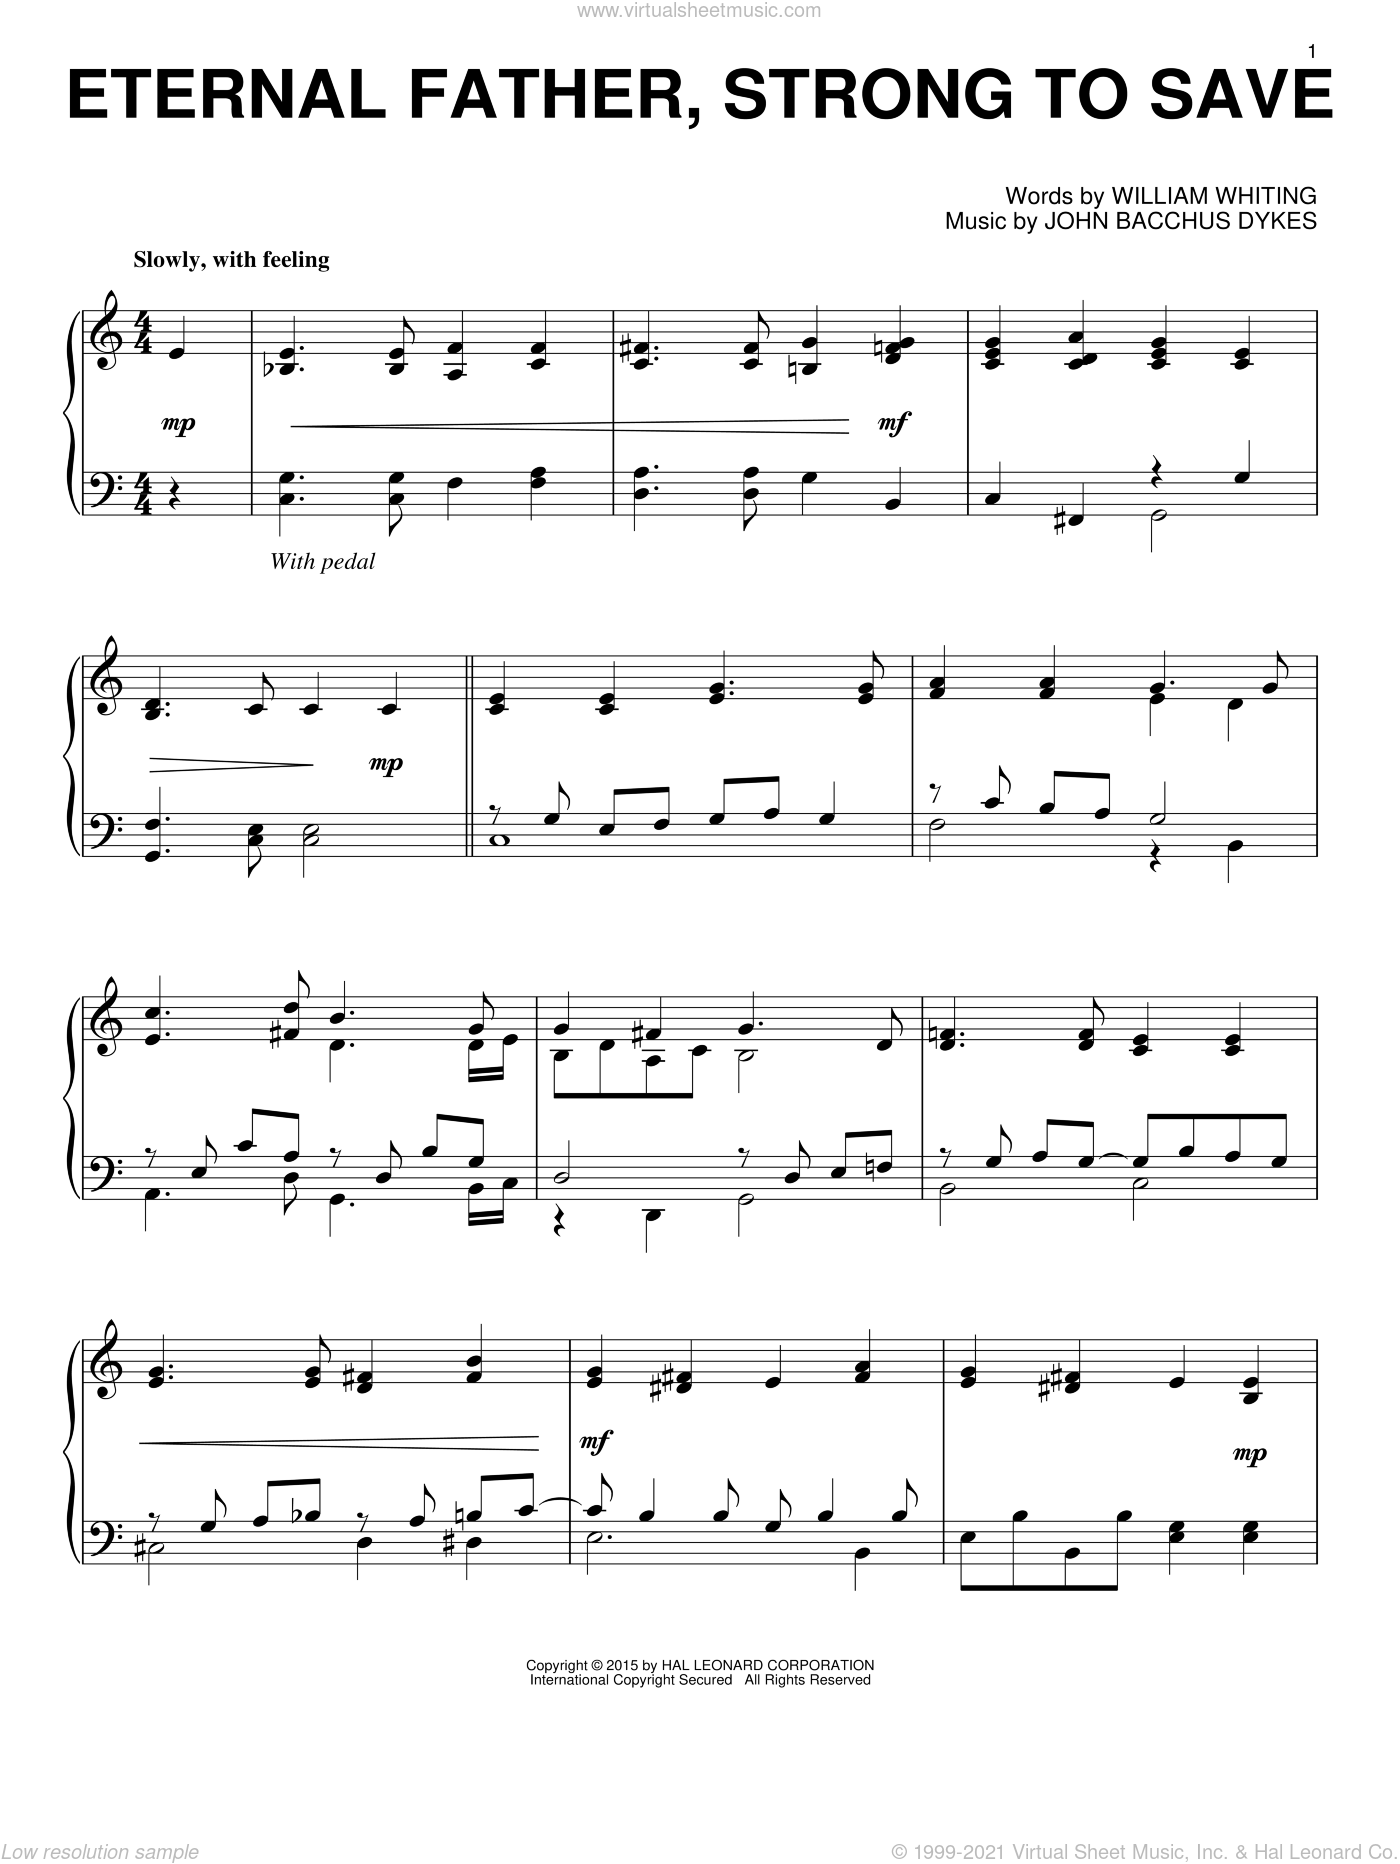 Eternal Father, Strong To Save sheet music for piano solo by William Whiting